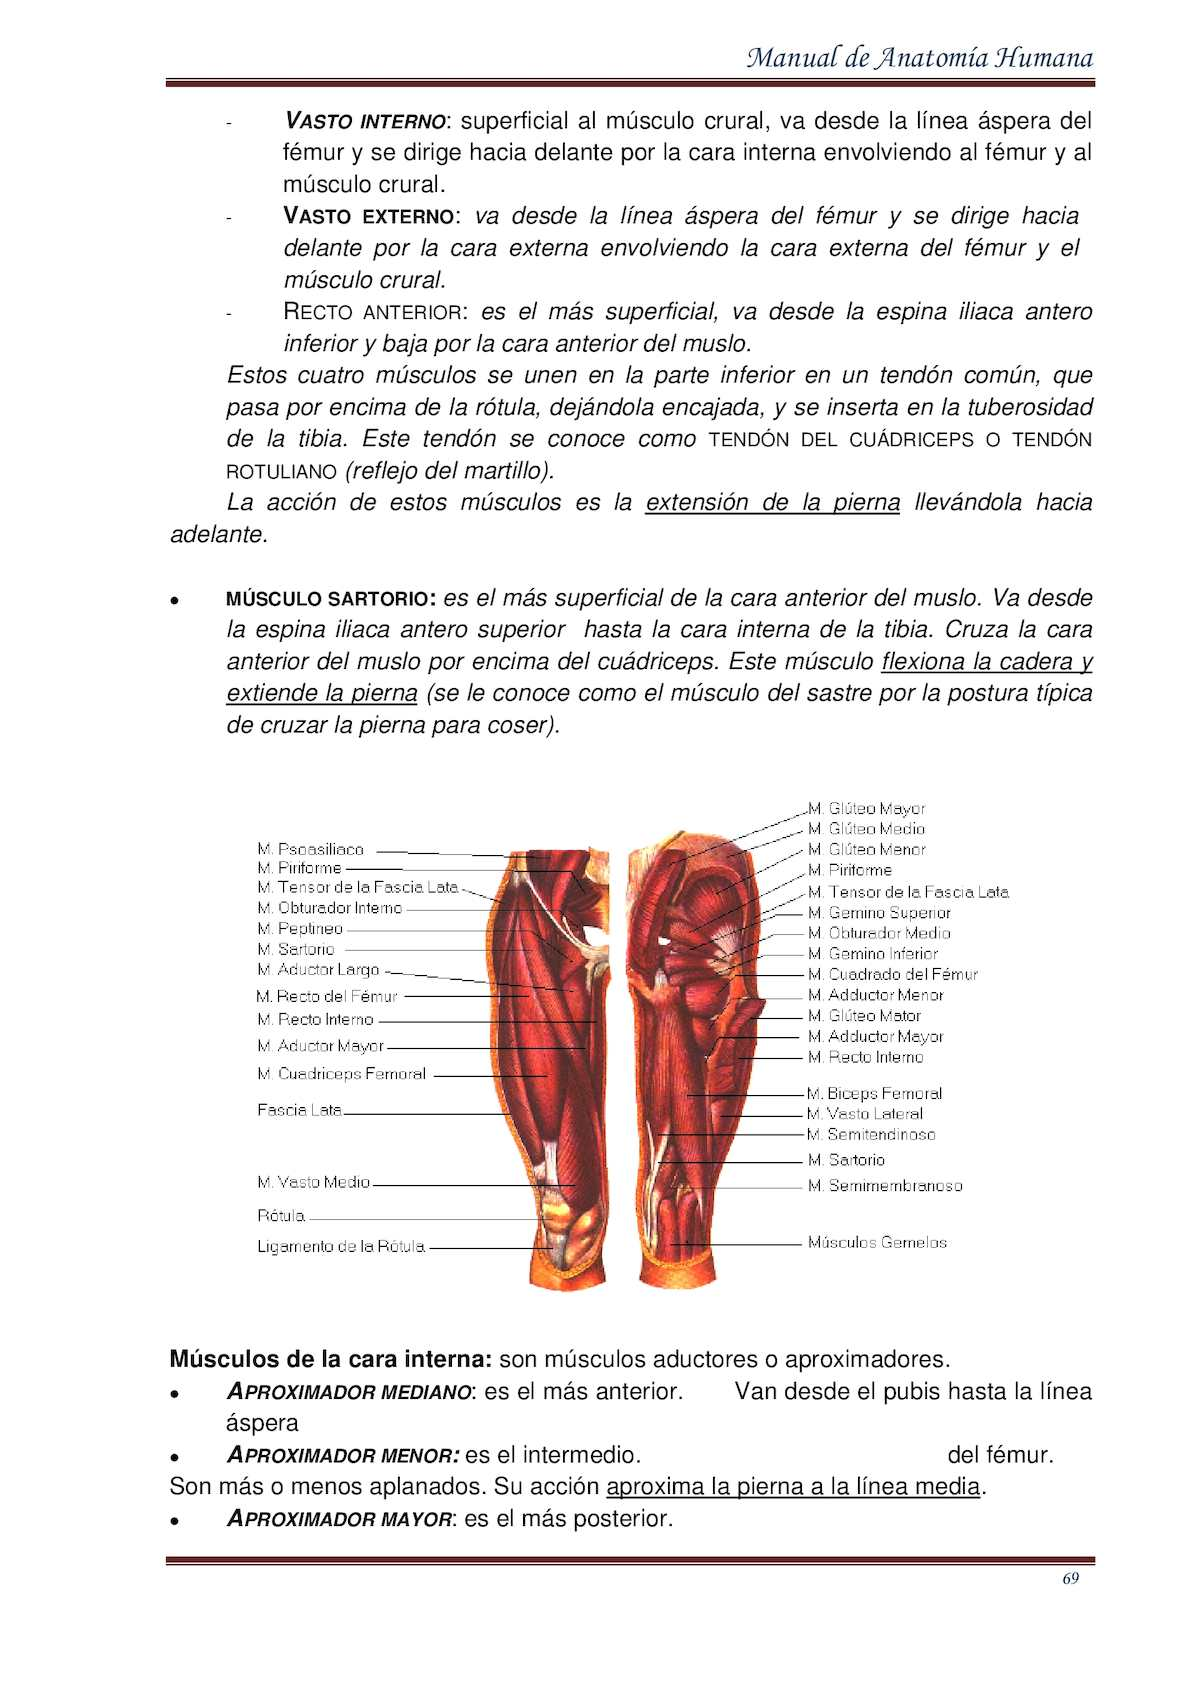 Manual De Anatomia Humana 2015 By Edwin Ambulodegui - CALAMEO Downloader